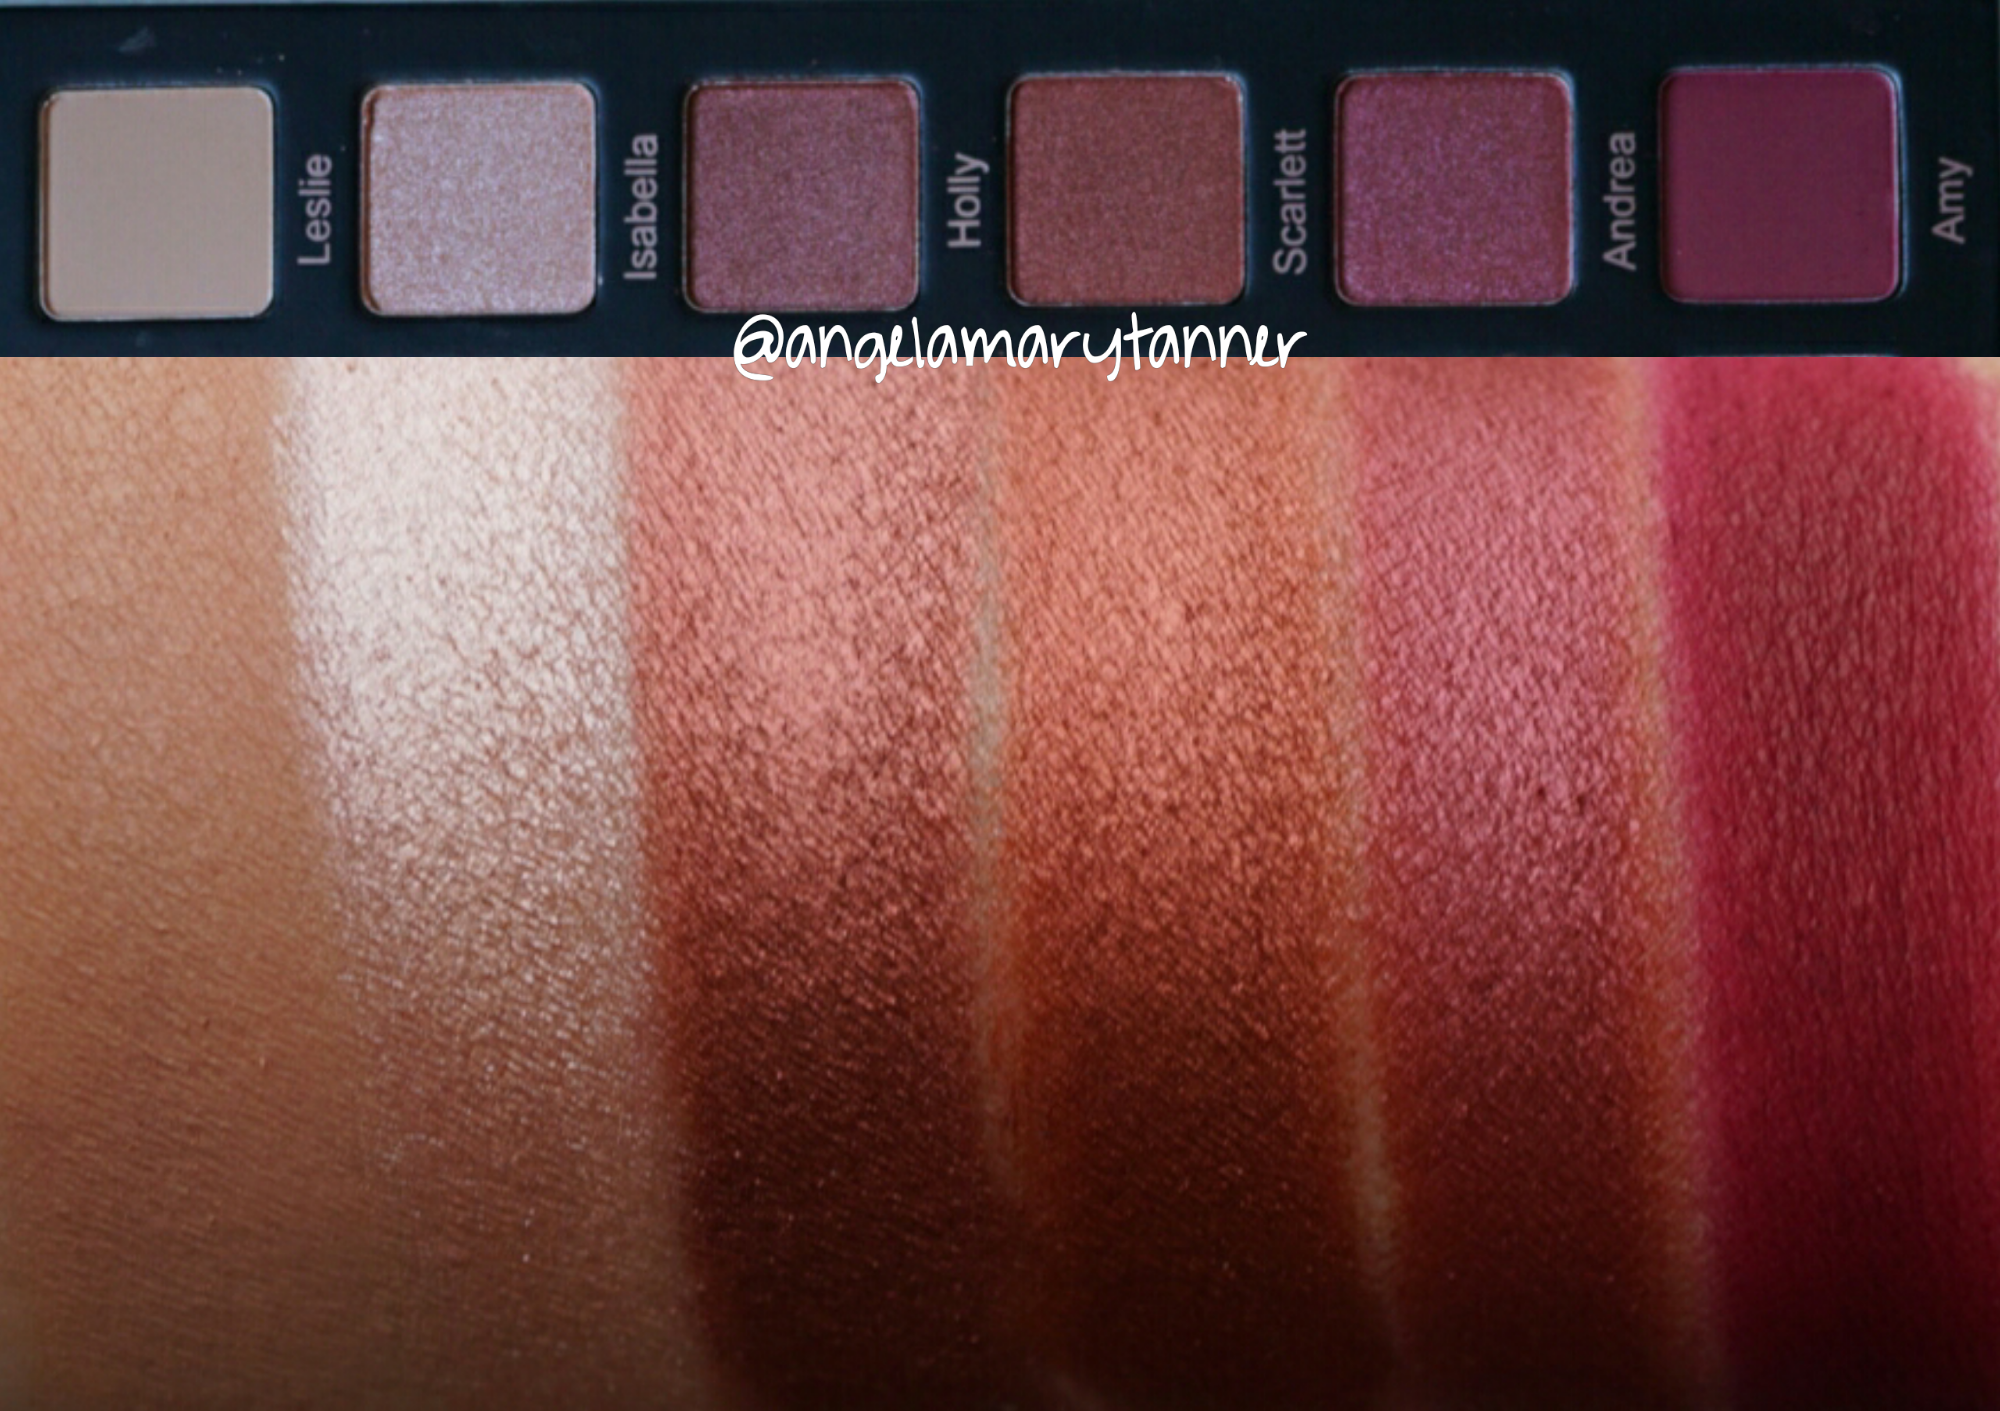 Violet Voss Ride Or Die Palette Review And Swatches